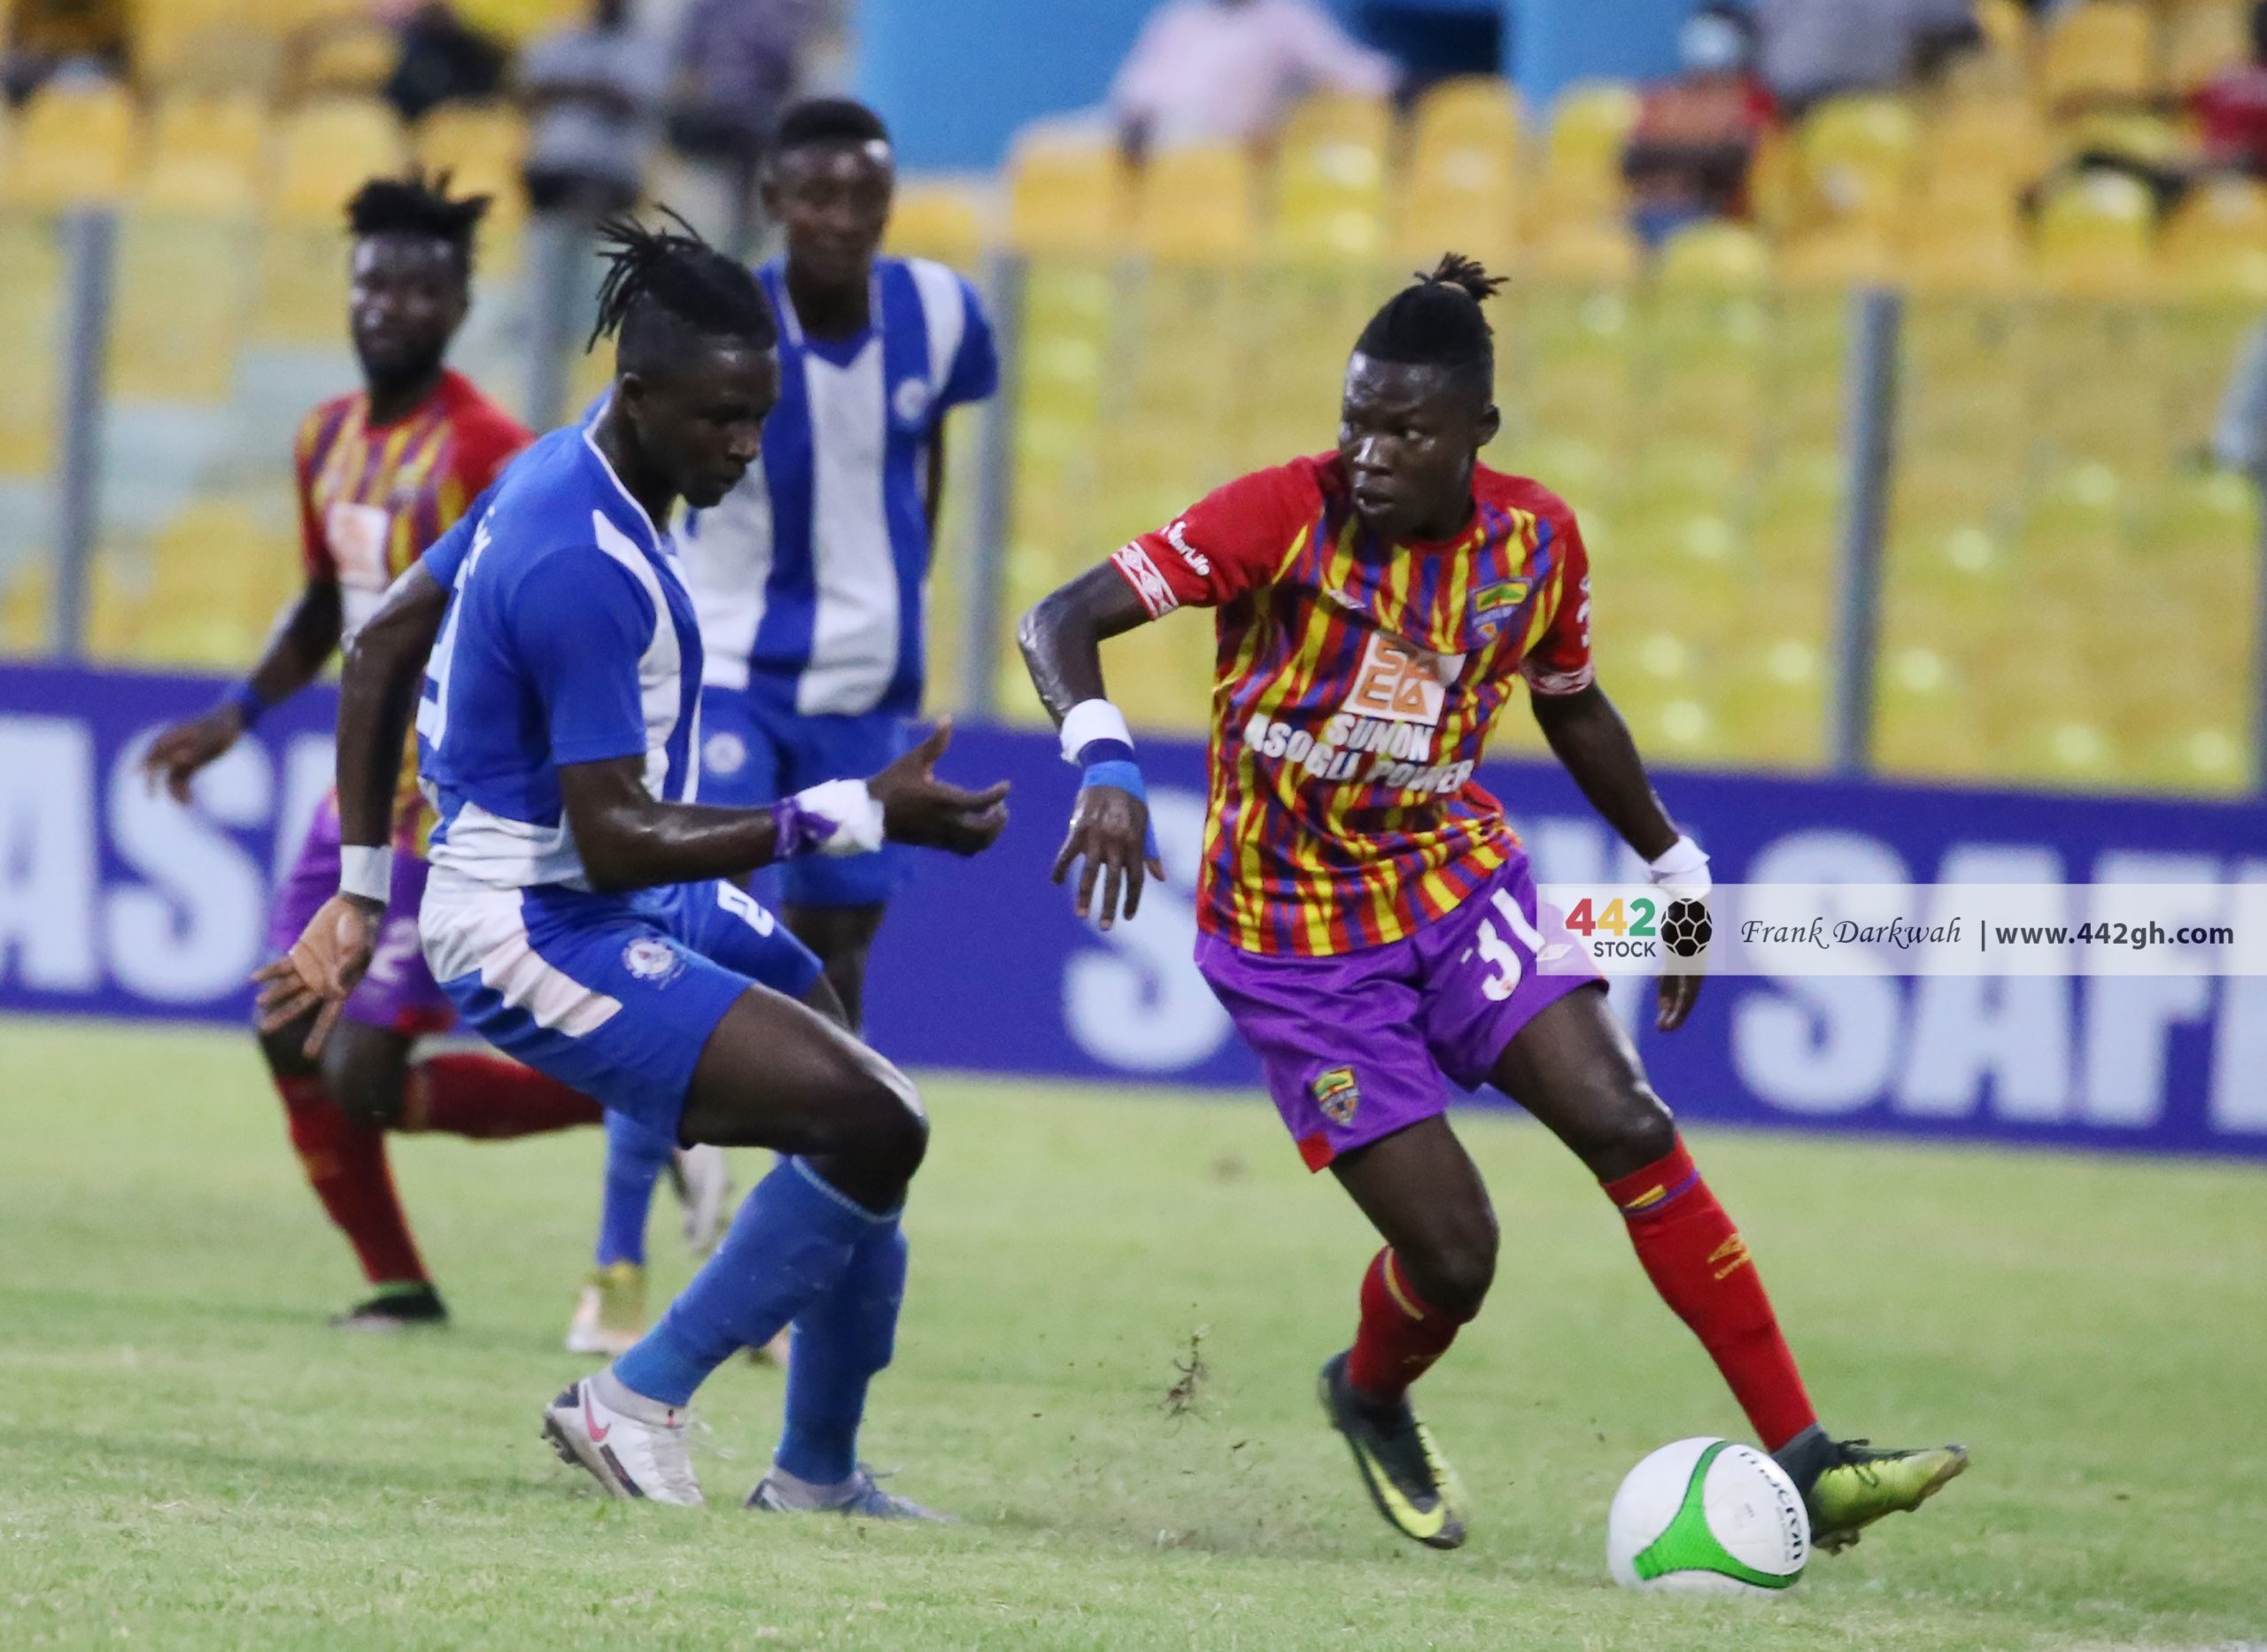 Dem 1 1 scaled 1 - Ghana FA sets new dates for remainder of Ghana Premier League to meet CAF deadline on Champions League representatives